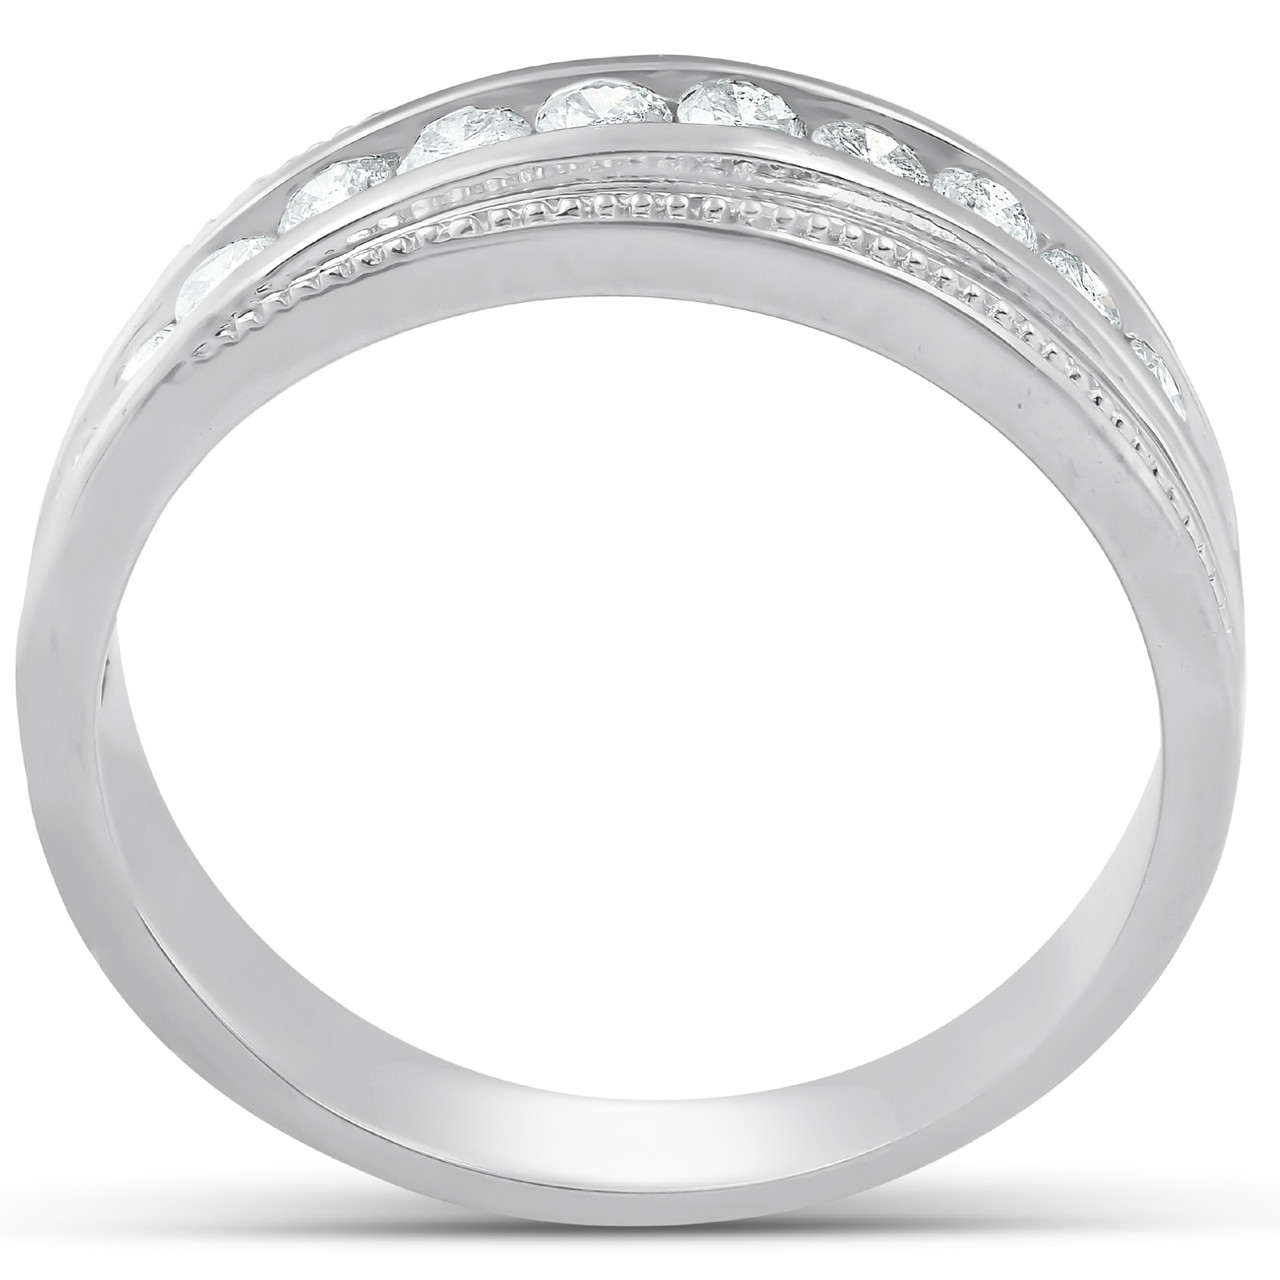 f8c894e332c16 1/2 Ct Mens Diamond Wedding Ring With Bead Accent High Polished 10k White  Gold (H, I1-I2)